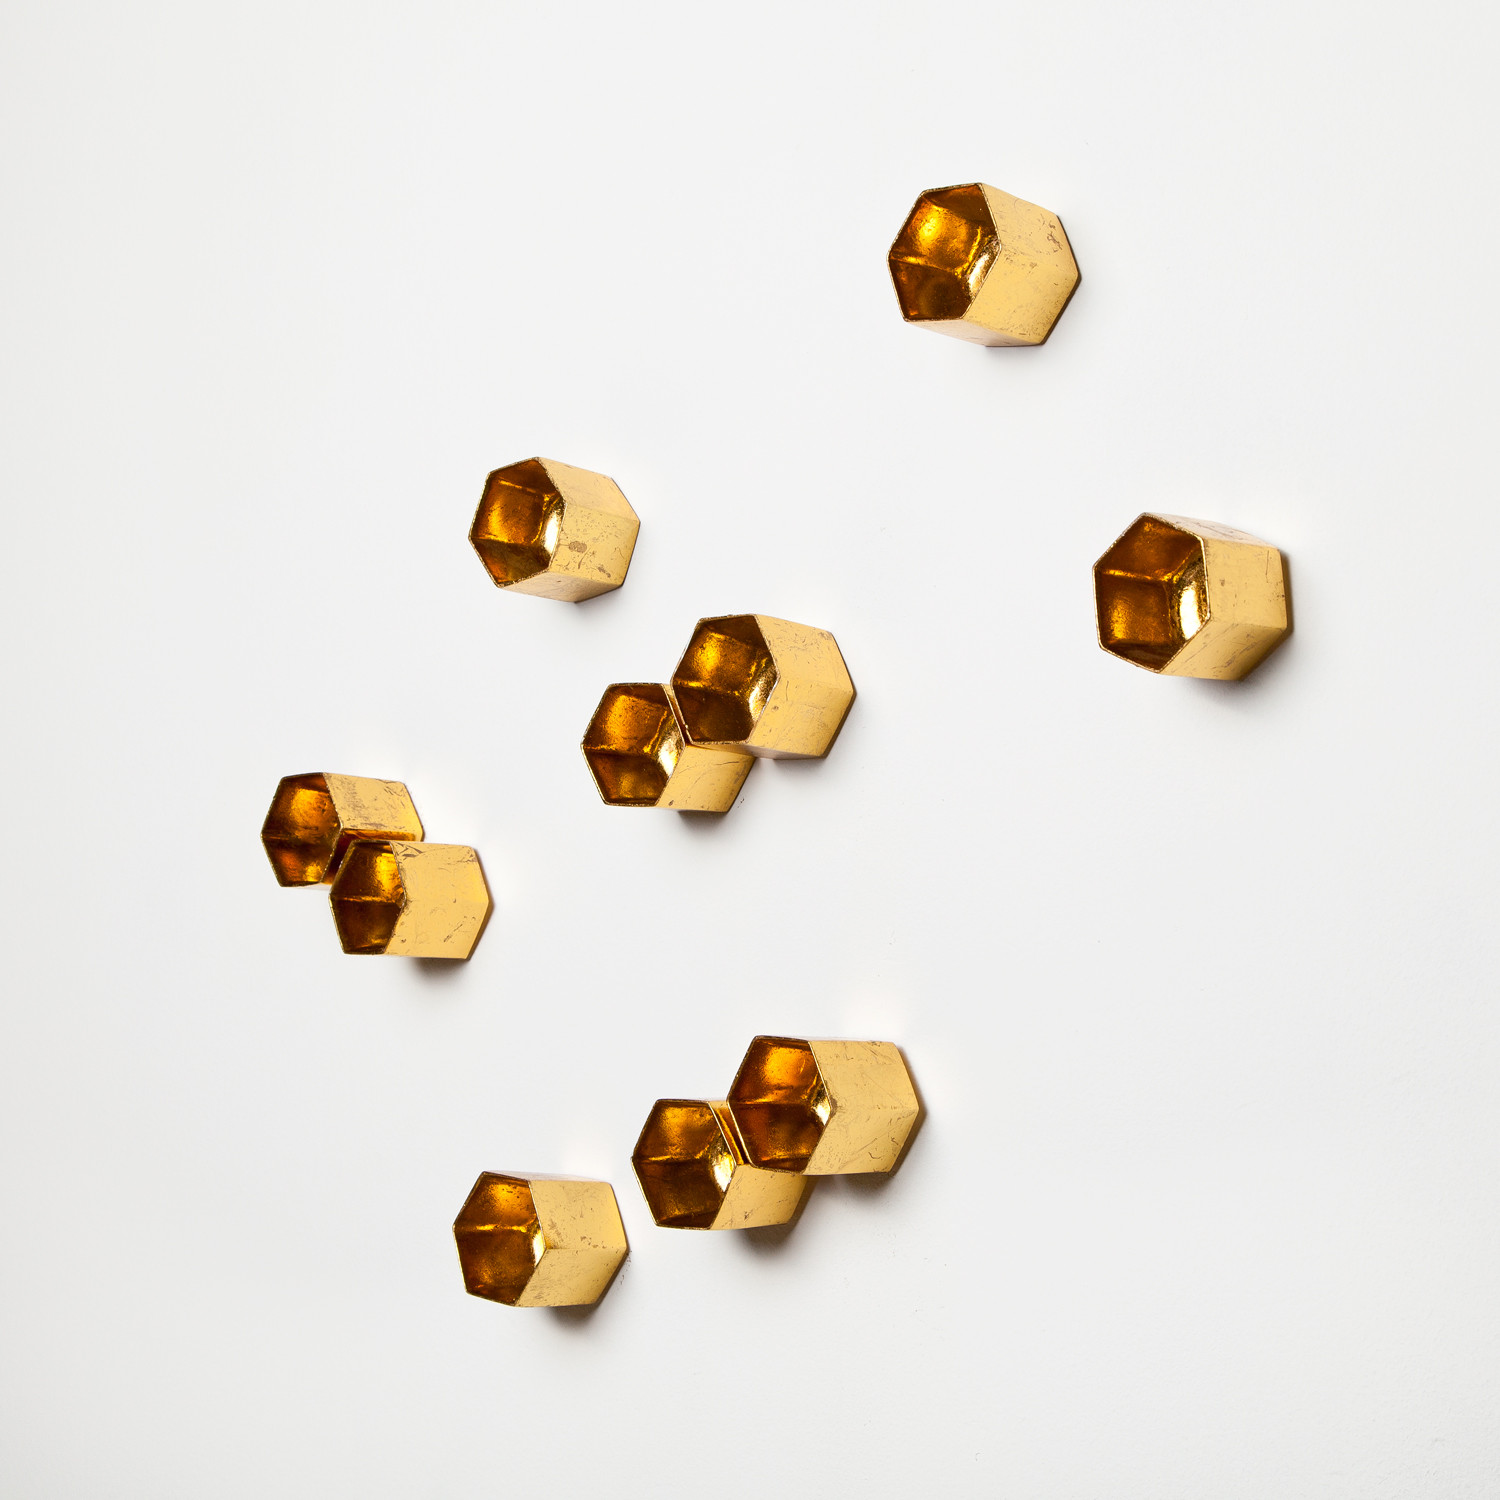 Beehive Wall Play Gold Set of 10 Gold Leaf Design Touch